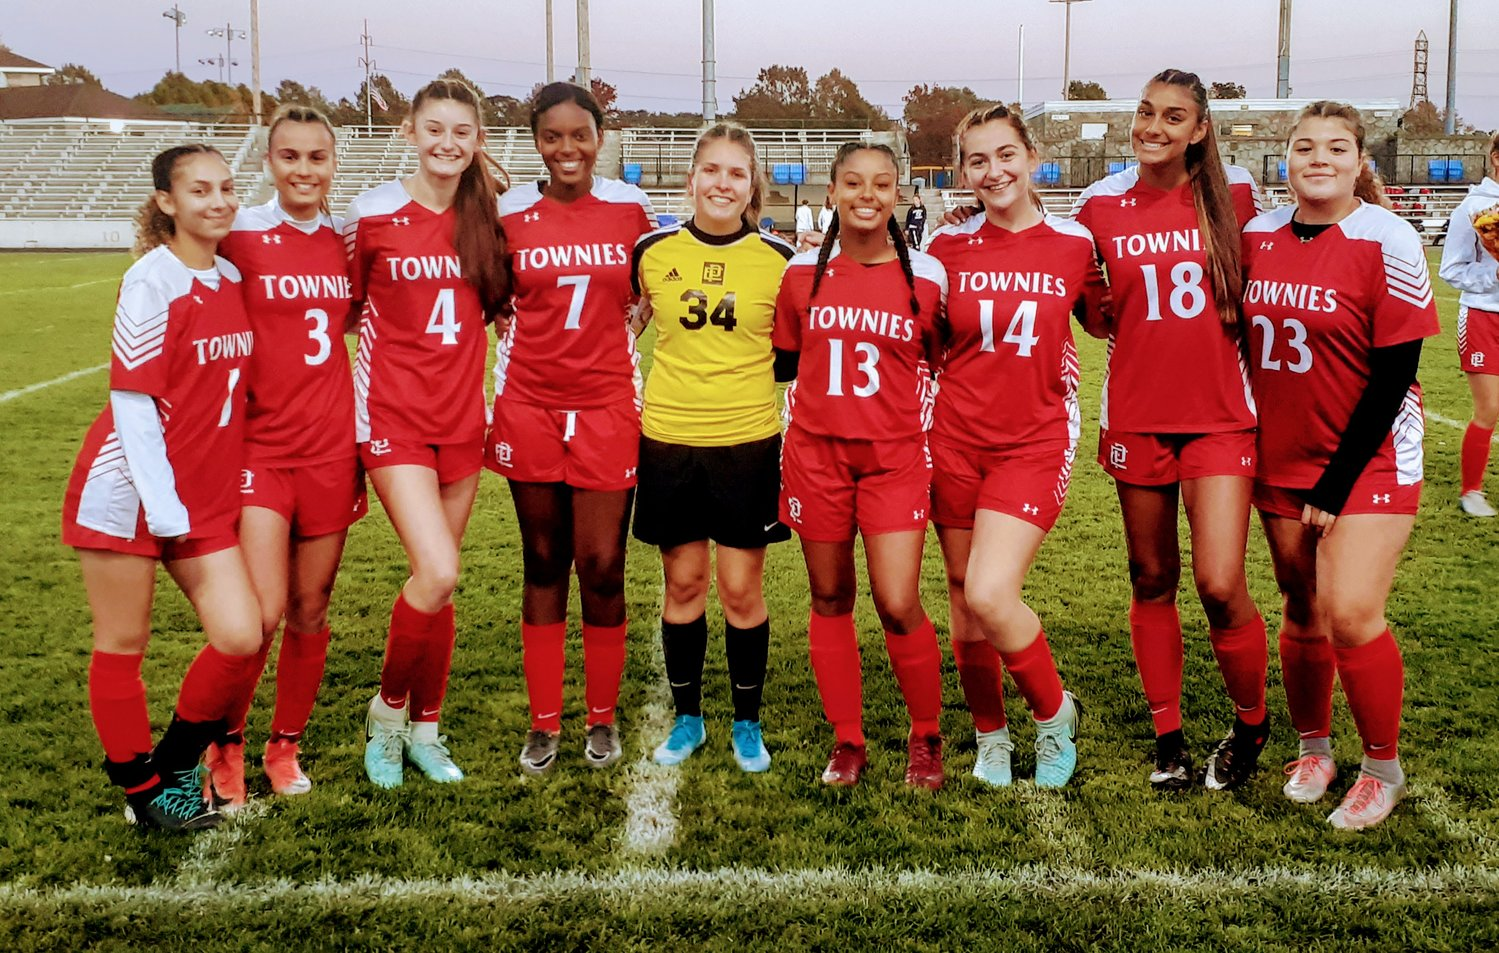 EPHS soccer team seniors honored before Monday's game at Pierce Stadium. Seniors L to R:  Ashley Cassino-Henriquez, Alyssa DeOliveira, Savannah Feola, Luana Rodrigues, Mia Jackson, Isabella Monteiro, Taylor Donnelly, Aaliyah Pattie and Simone Driscoll-Nicholaus.